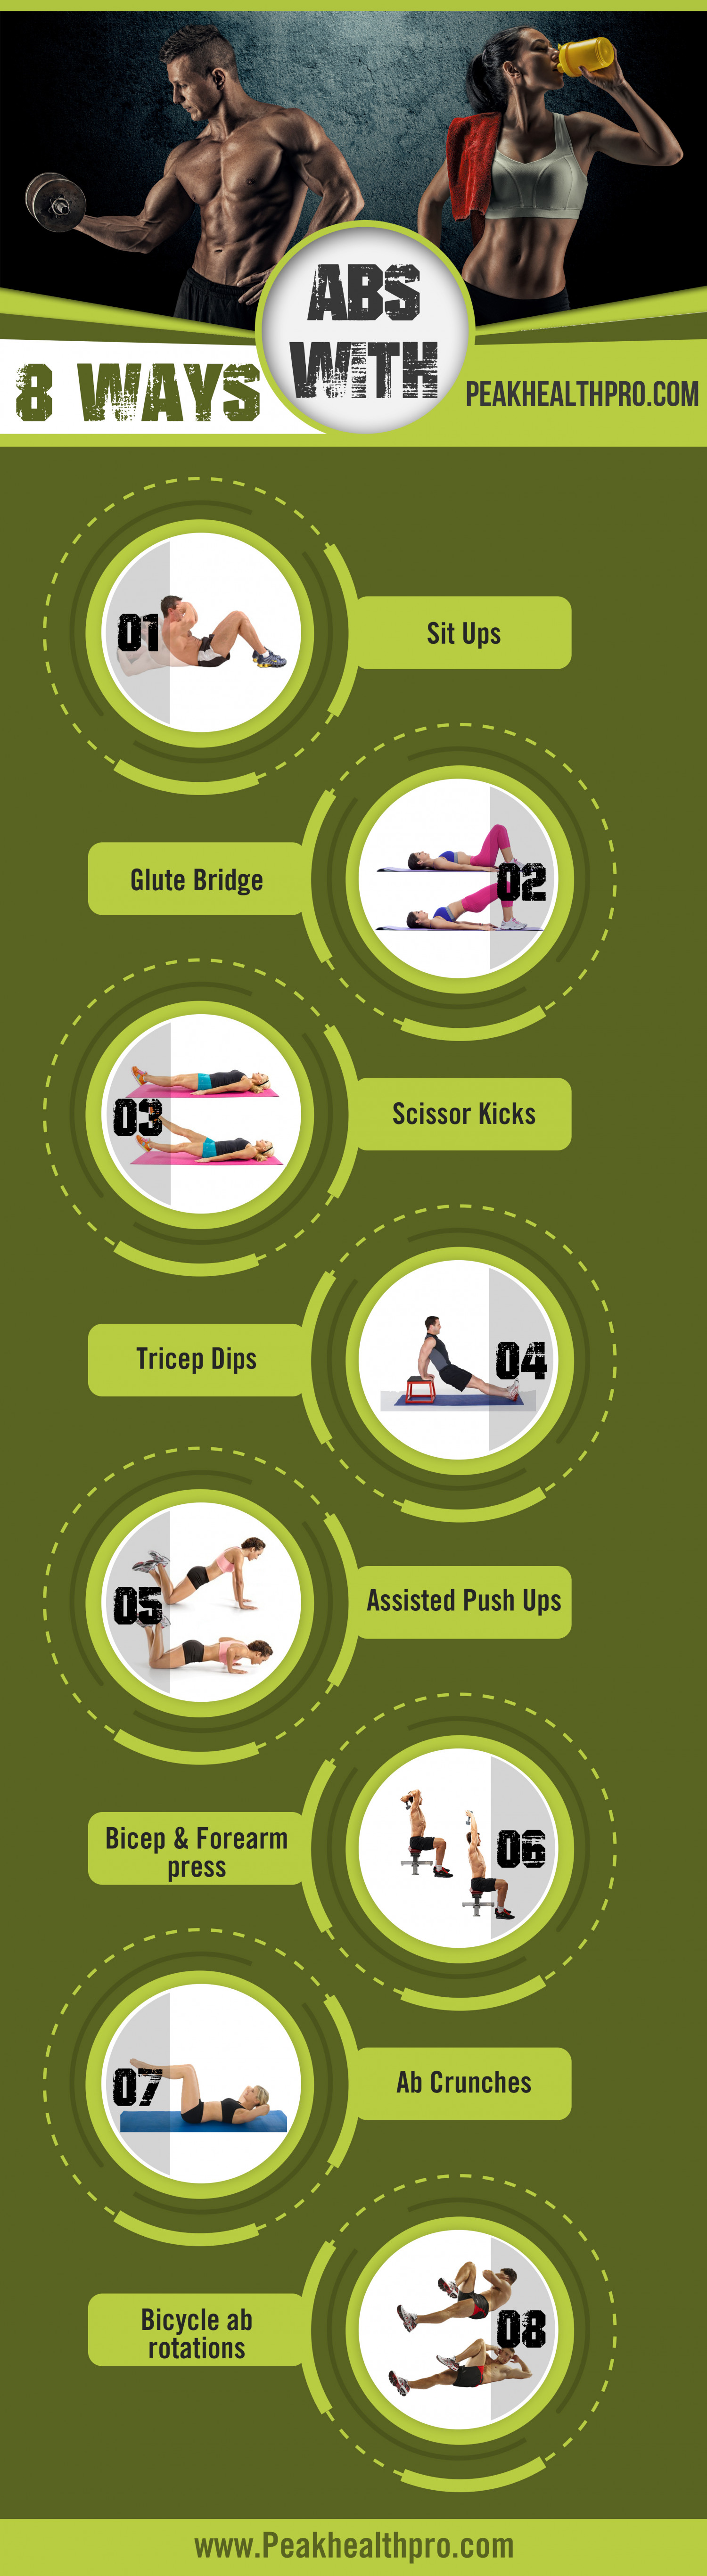 8 ways to abs Infographic